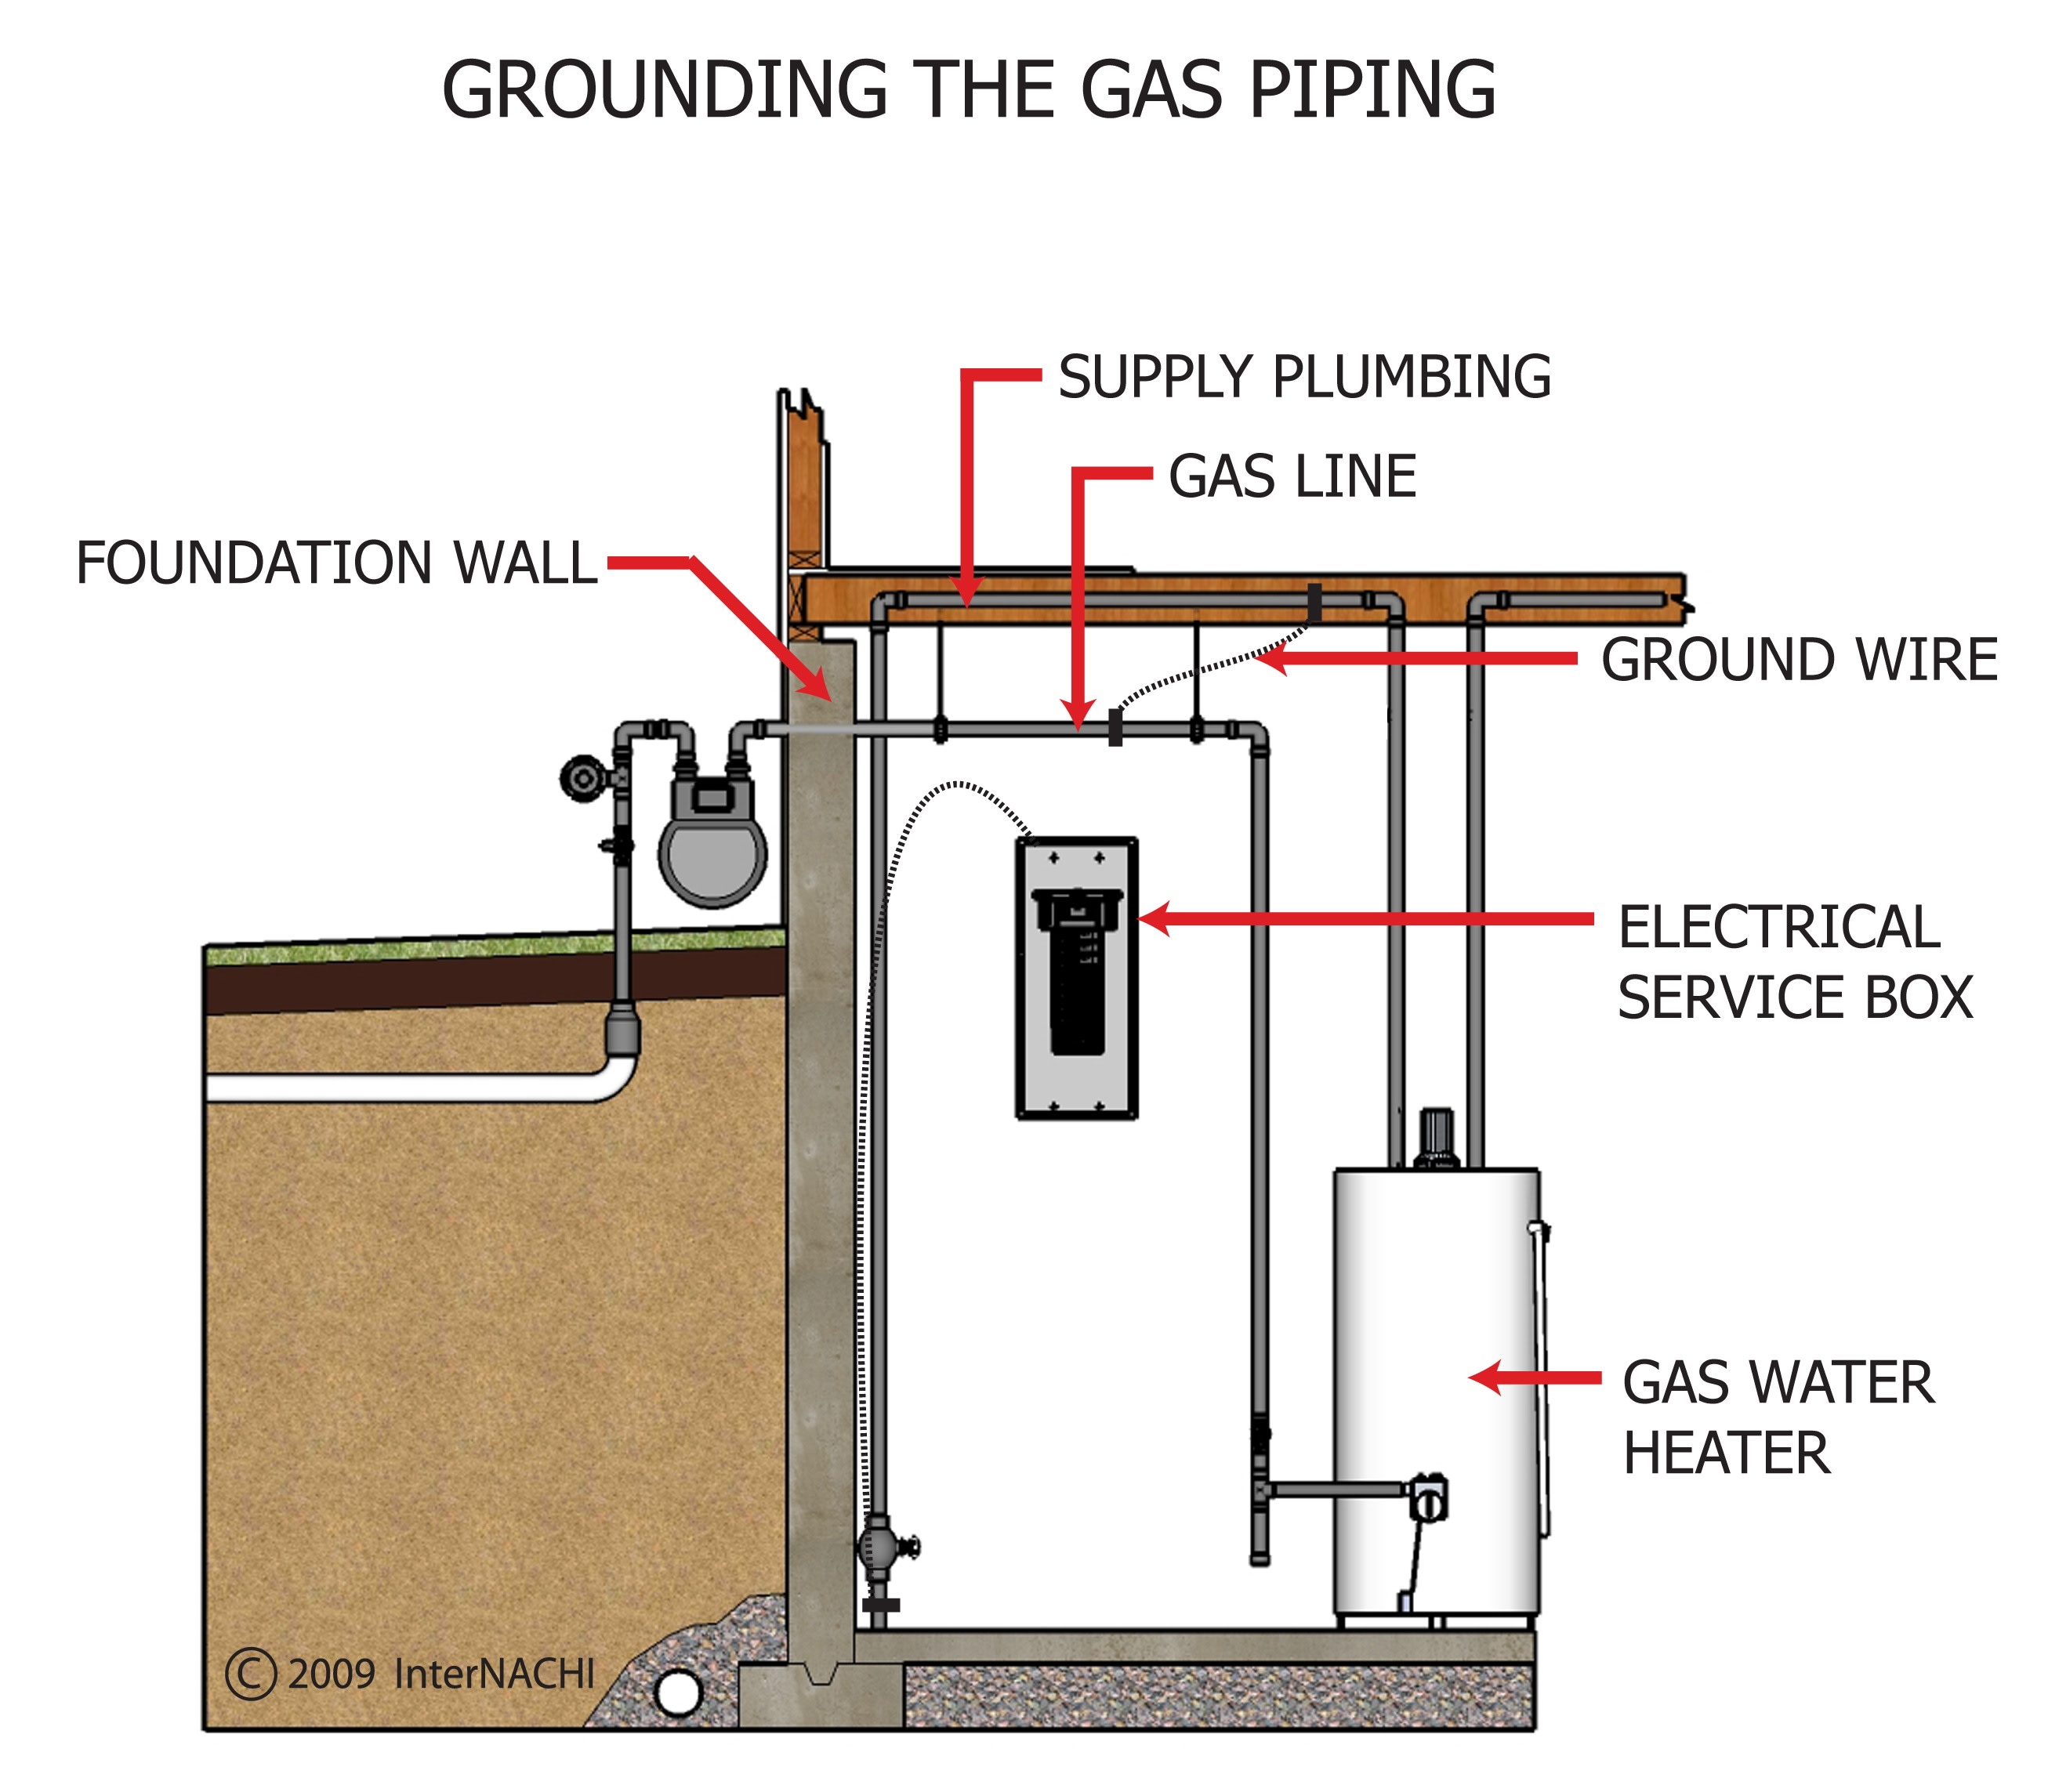 Grounding the gas piping.